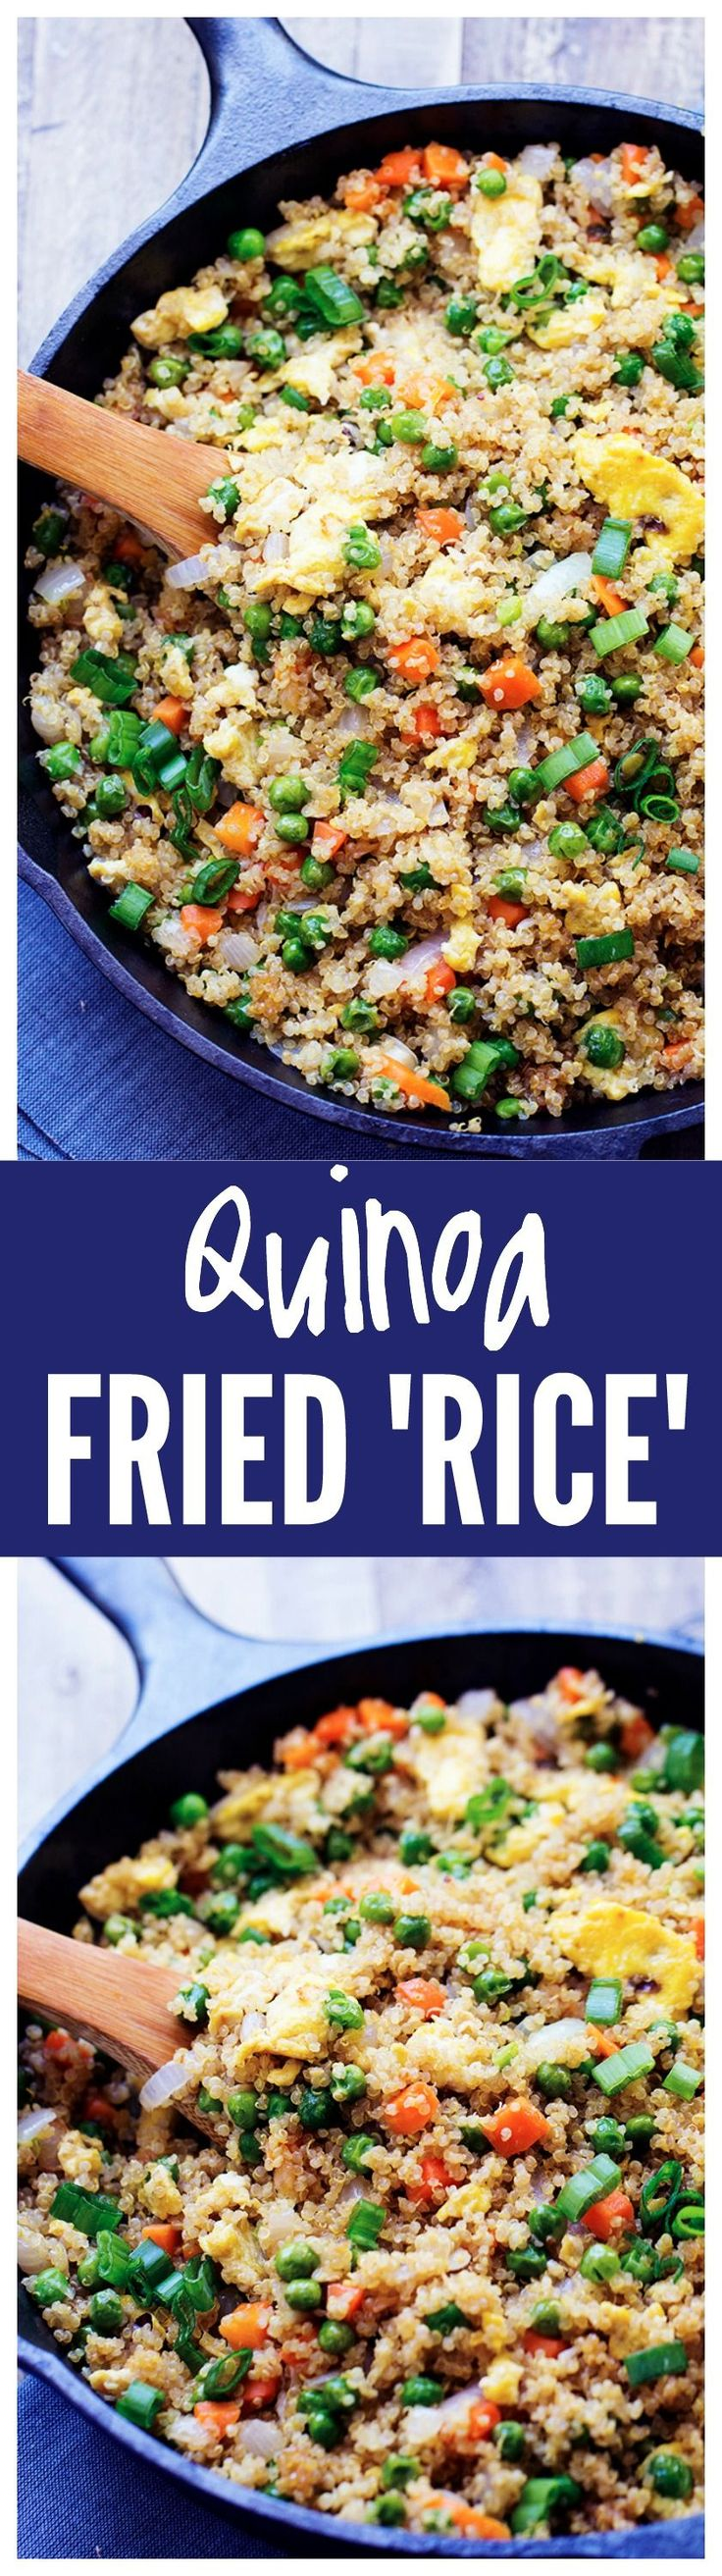 This Quinoa Fried Rice is Better than Takeout and SO much better for you!